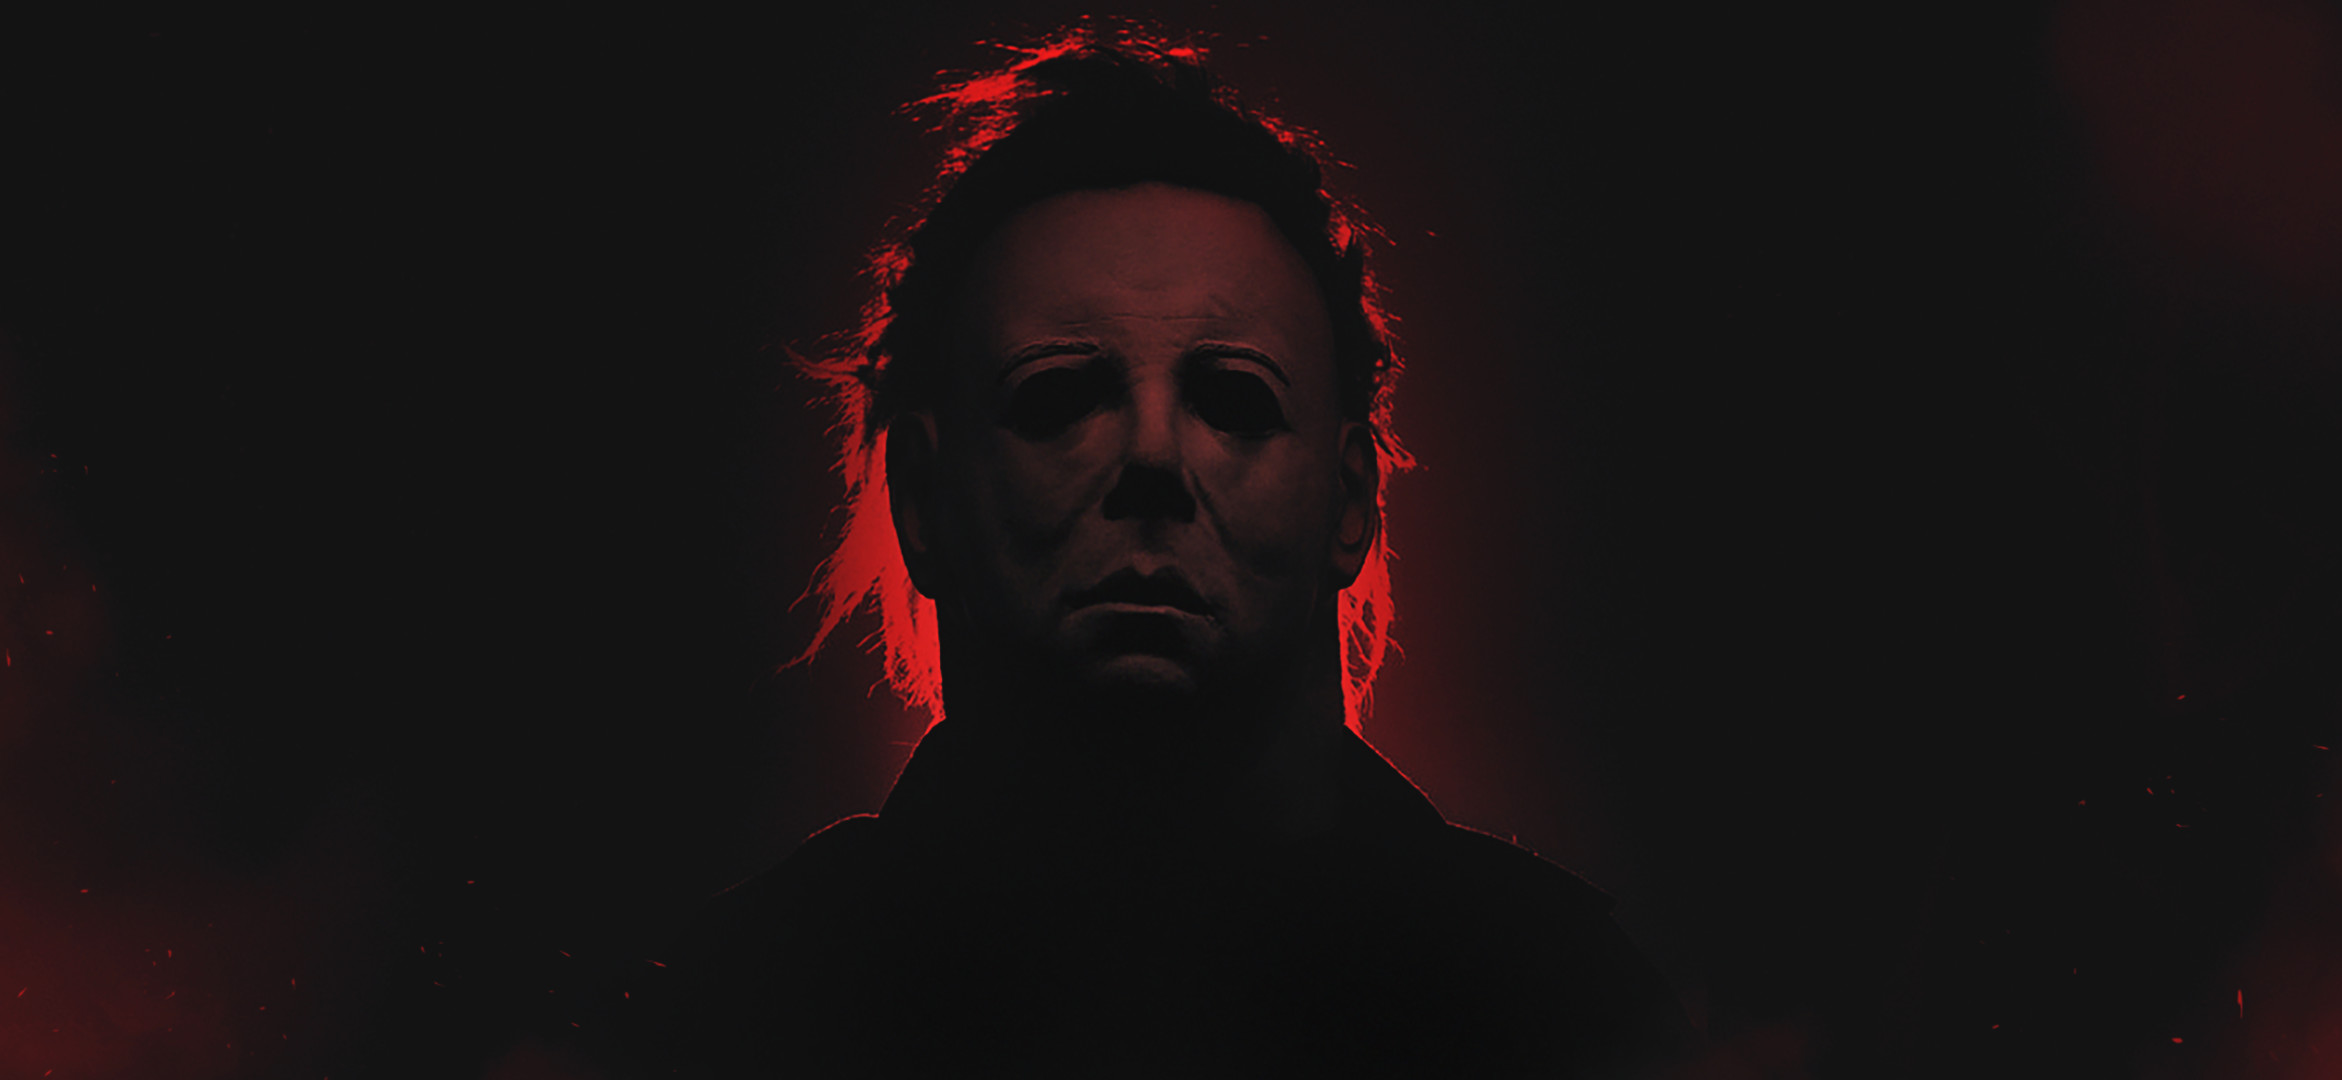 Horror Movie Wallpapers Wallpapertag: Halloween Michael Myers Wallpapers (75+ Images